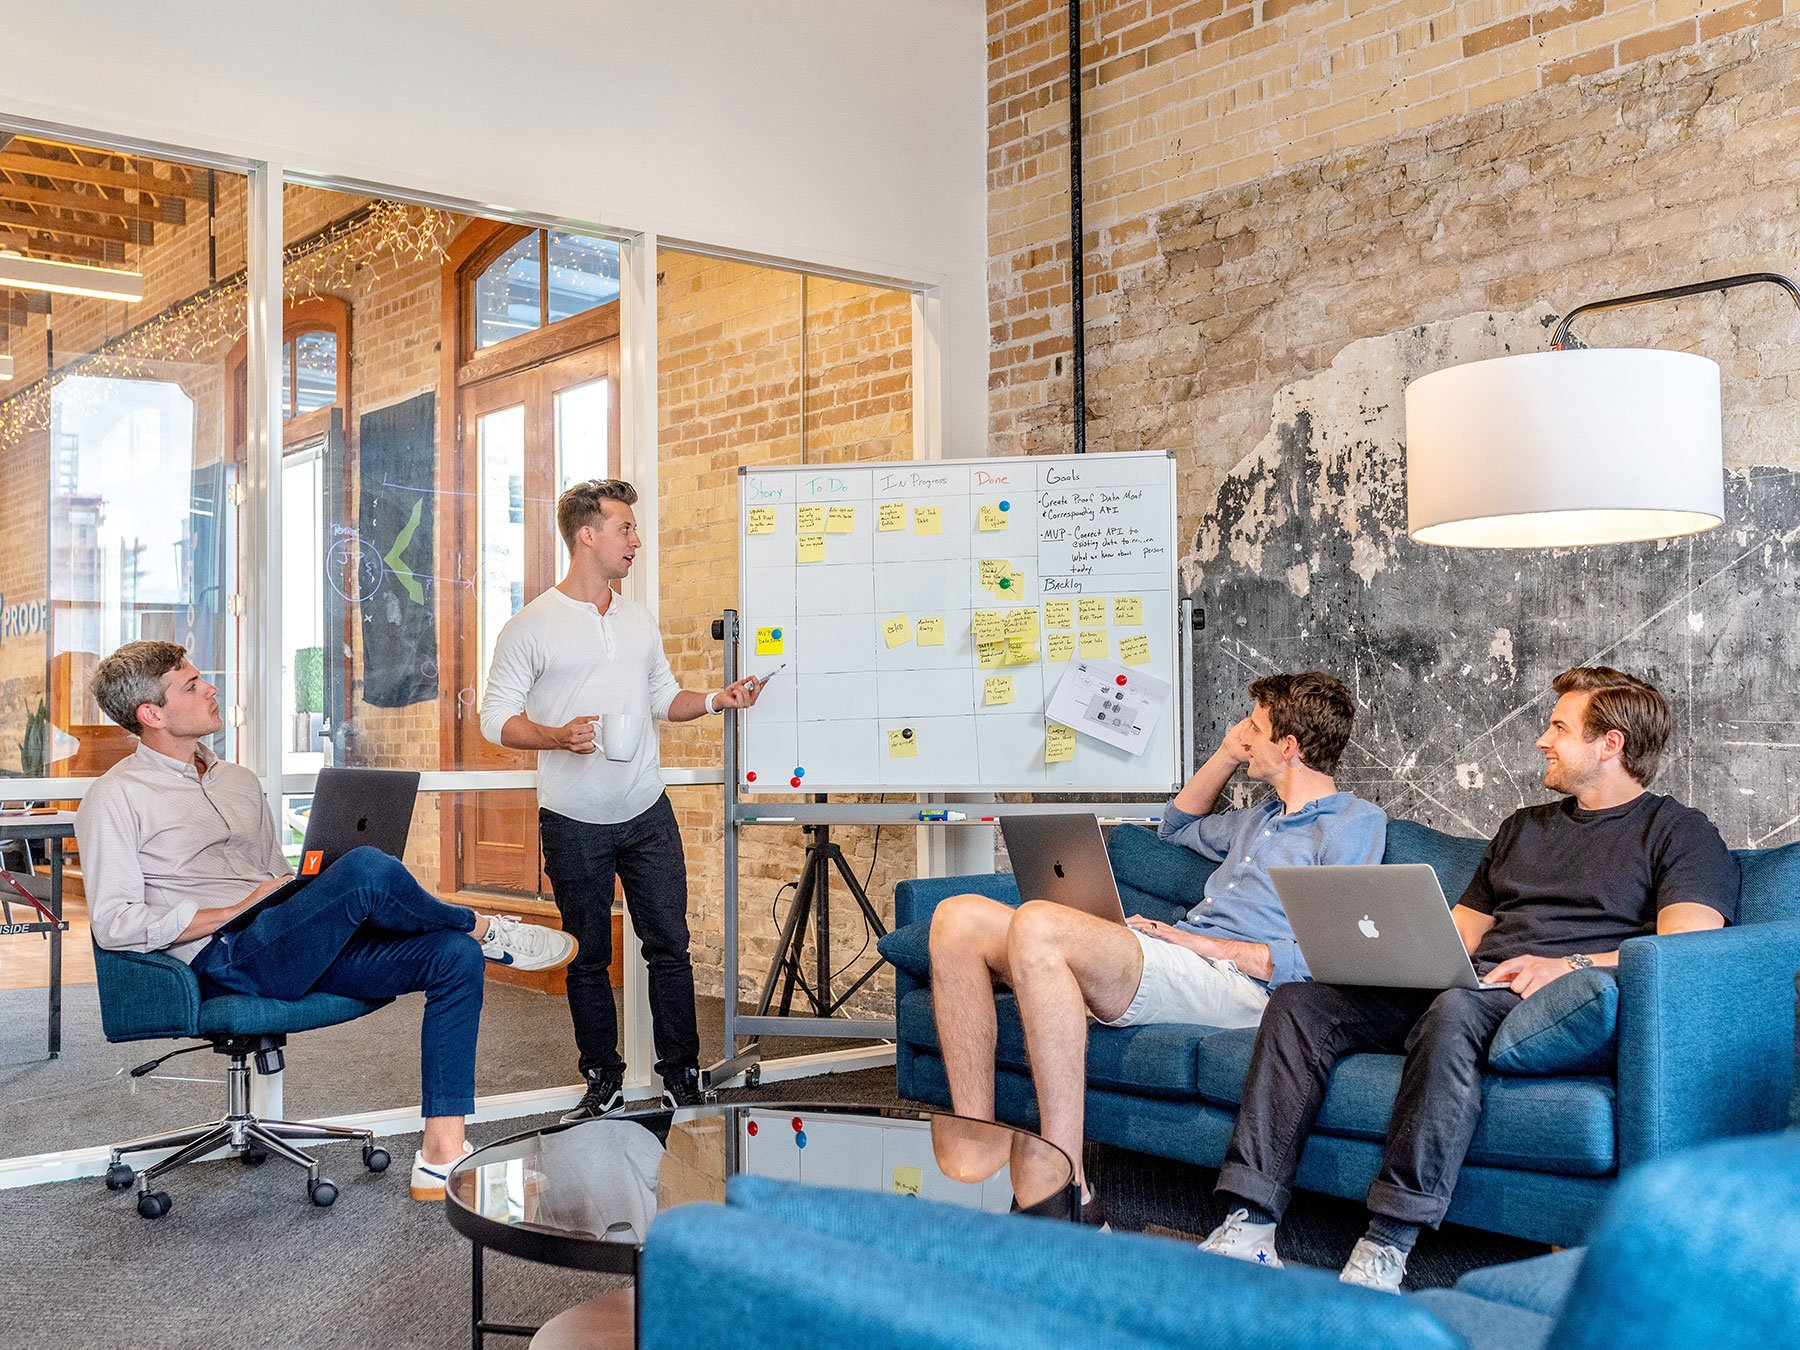 Hybrid workplace management: Rotate teams, not individual employees